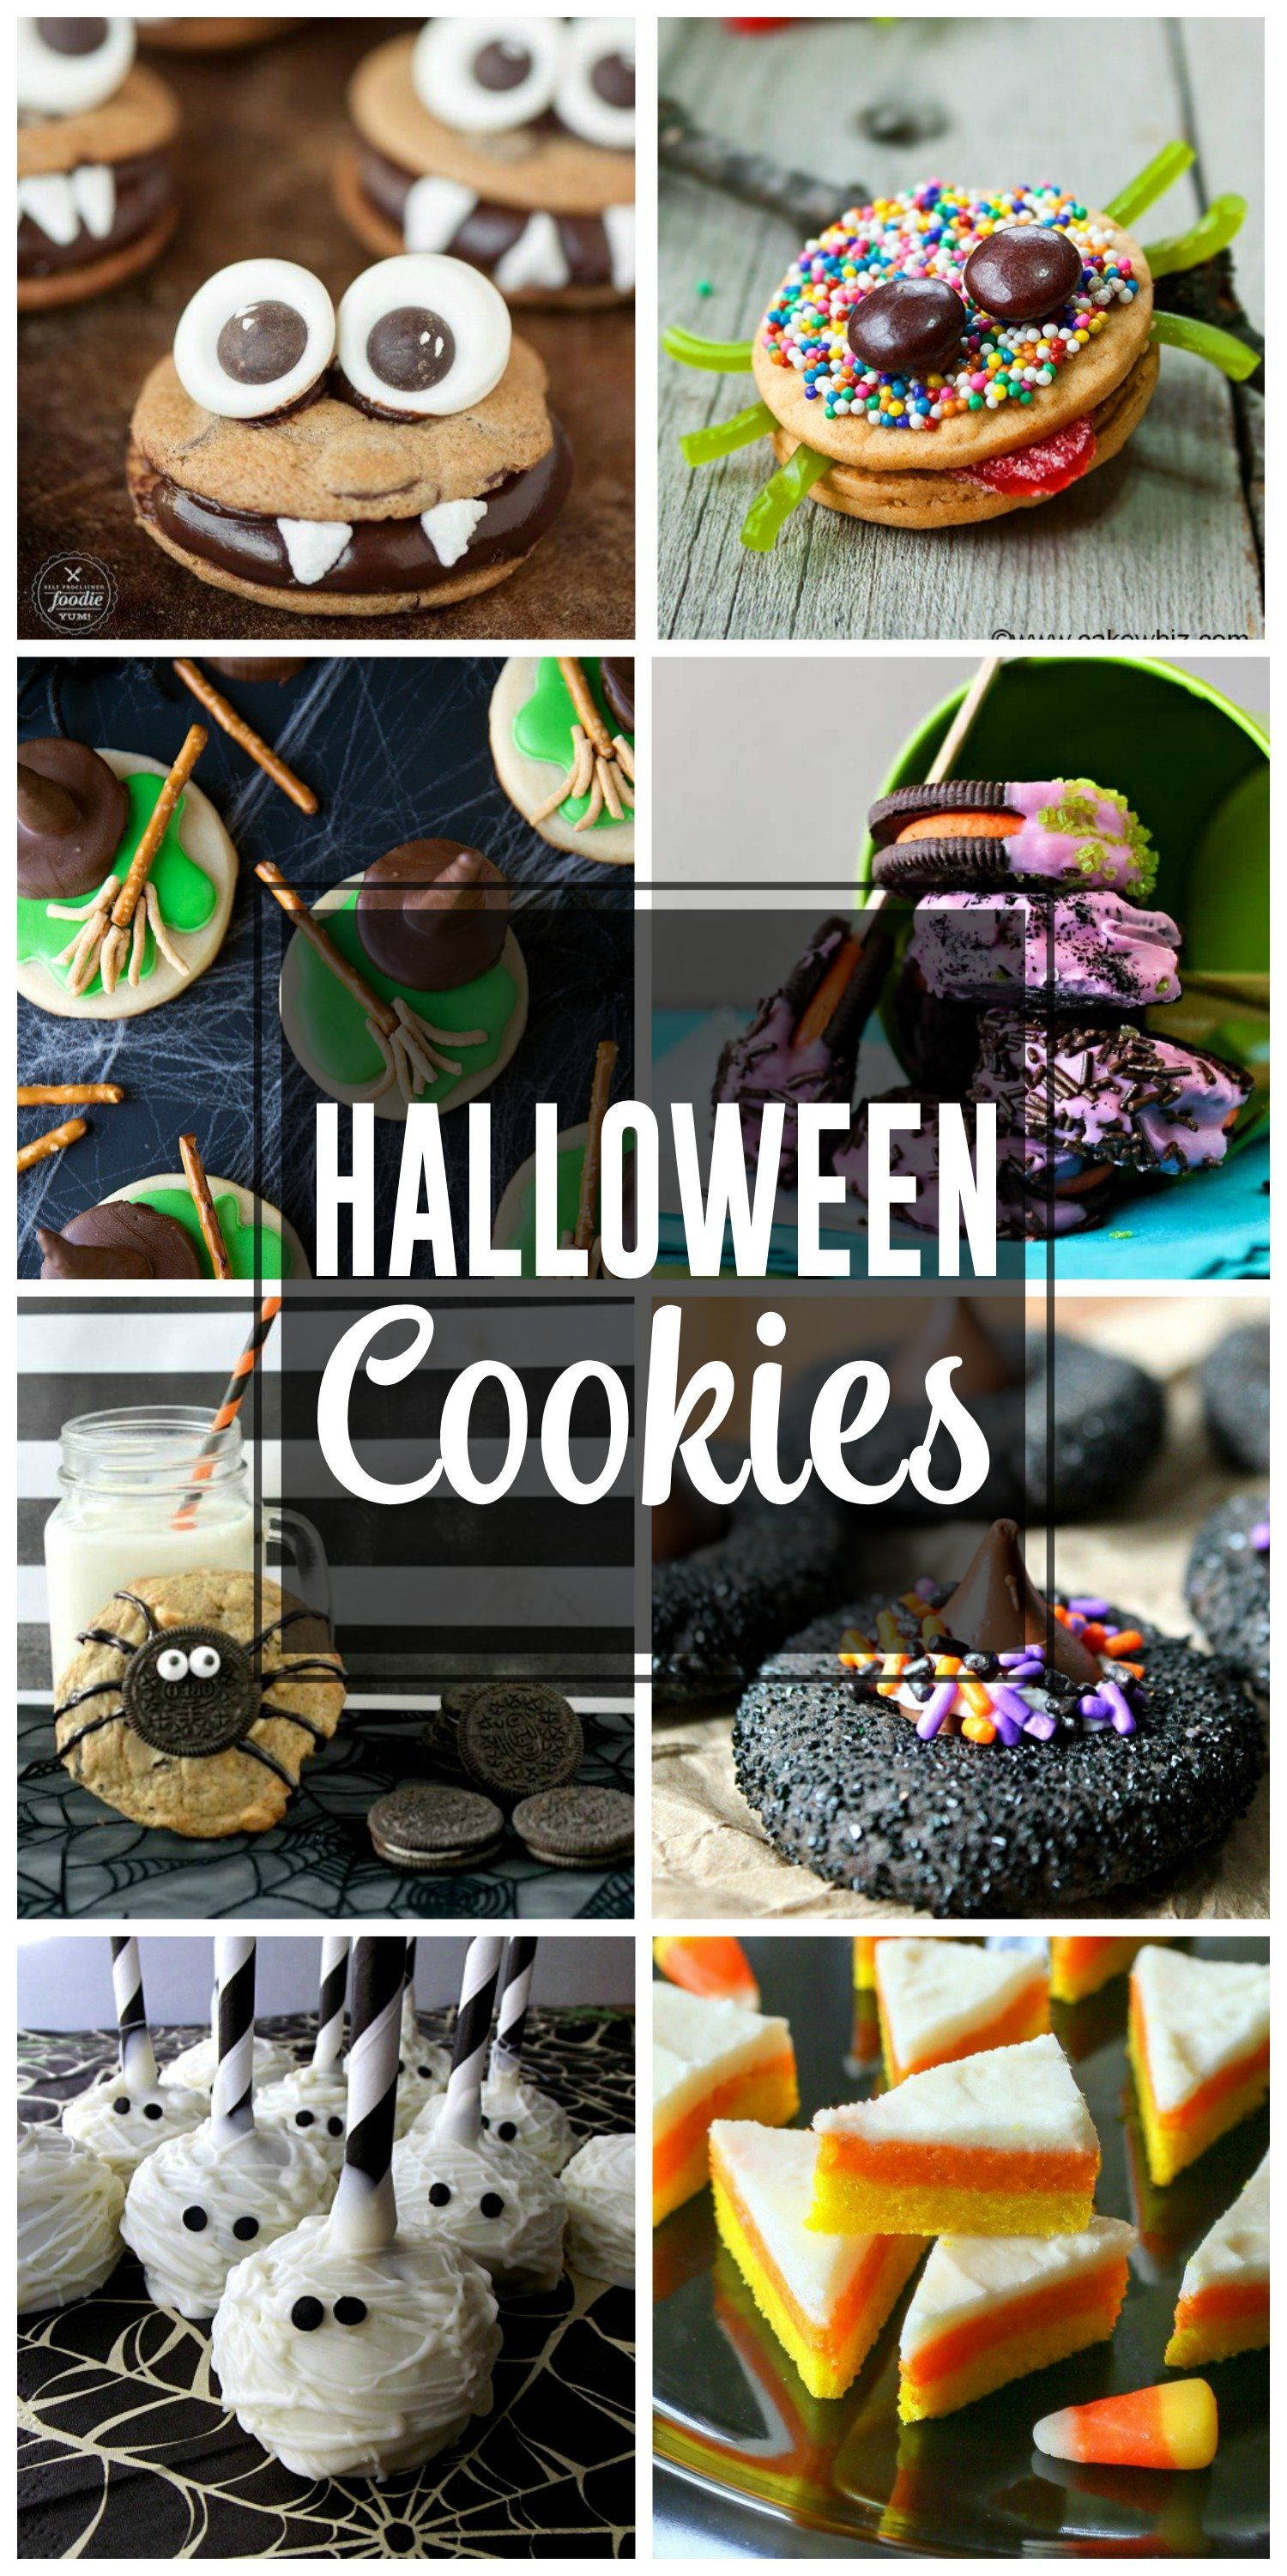 the best halloween cookies 25 delicious and festive halloween cookie recipes lots of great ideas to get your culinary juices flowing